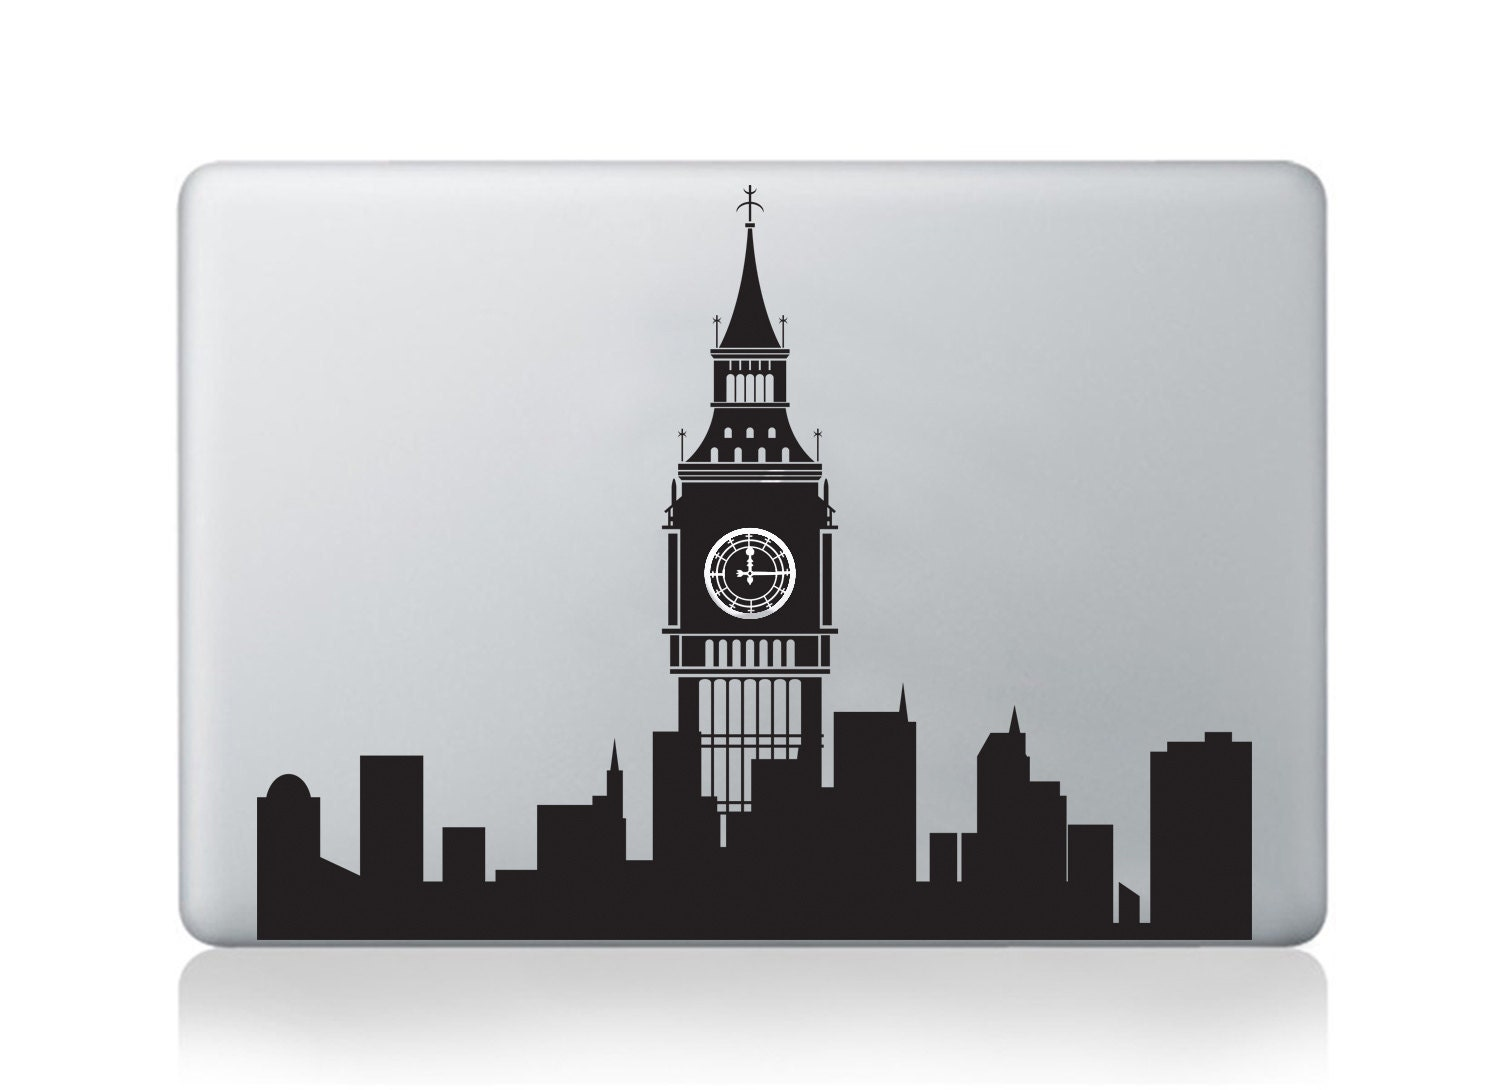 Macbook decal pro air London Skyline vinyl sticker light apple decal mural transfer graphic laptop notebook skin Asus HP Toshiba Dell decal